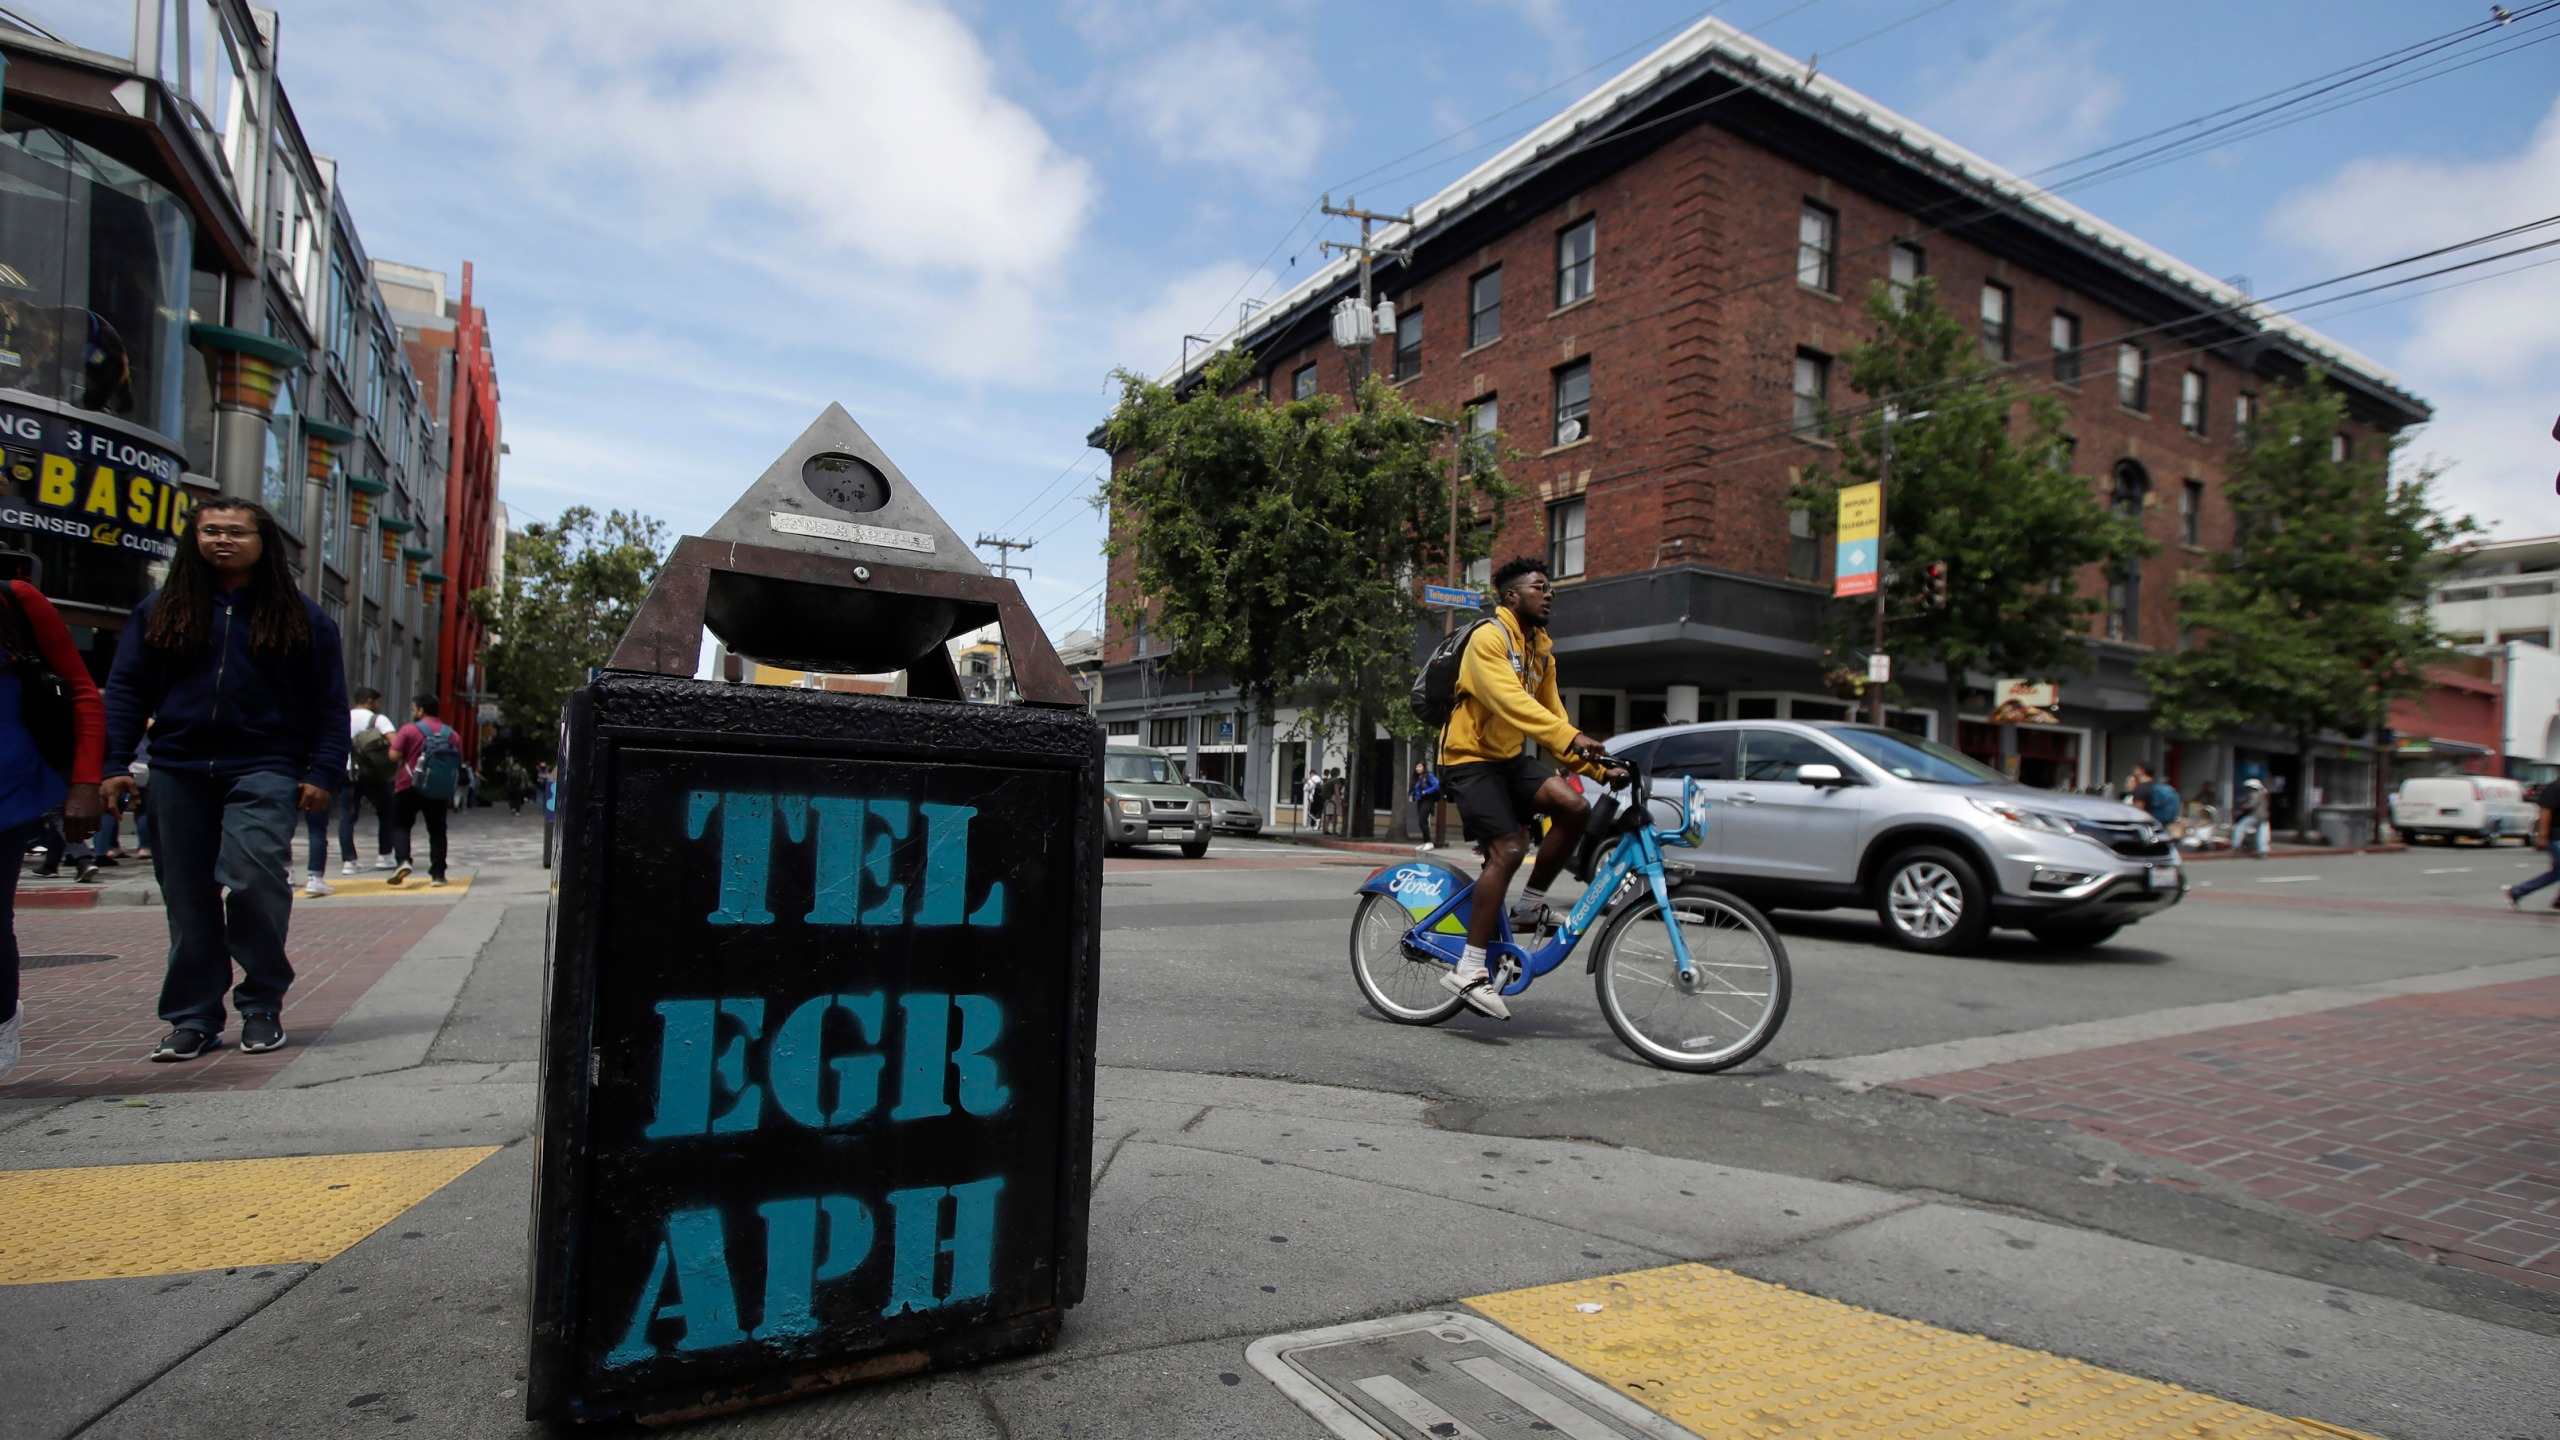 In this file photo from July 18, 2019, traffic and pedestrians cross Telegraph Avenue in Berkeley. (AP Photo/Jeff Chiu, File)